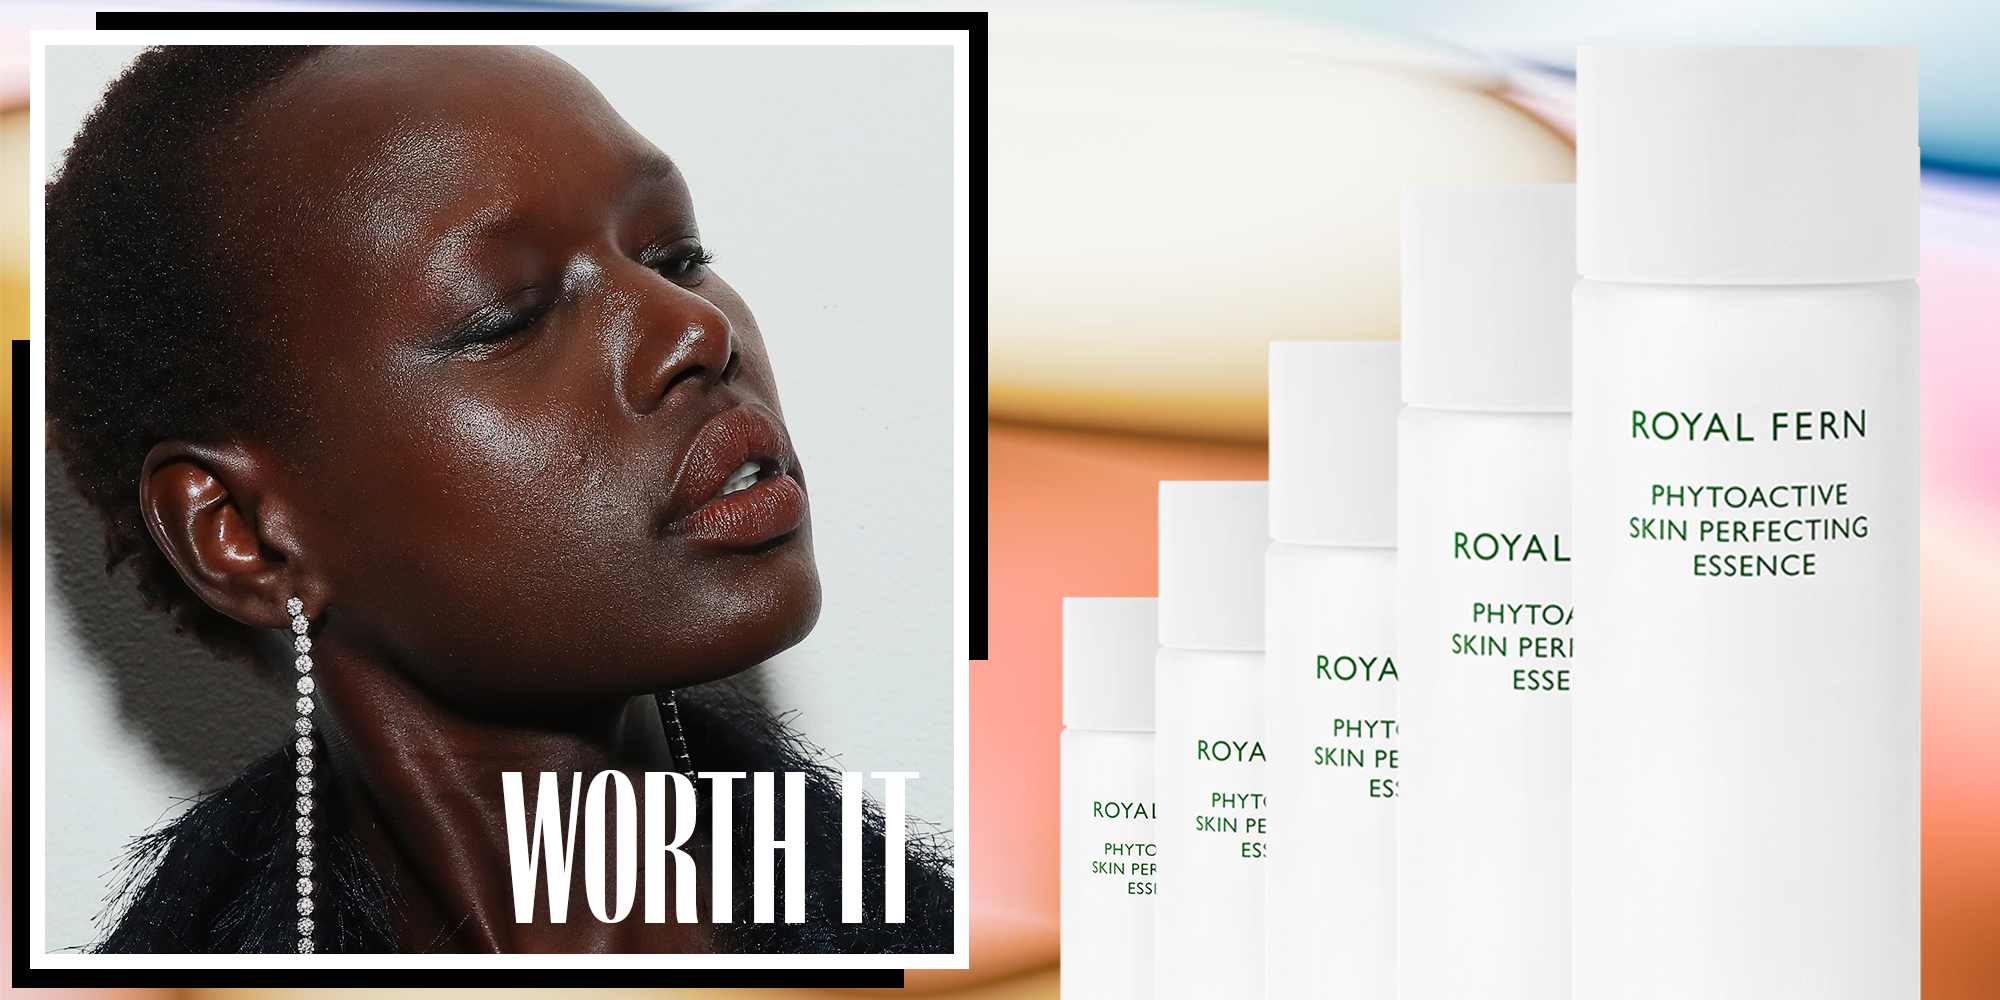 Why Royal Fern's Phytoactive Skin Perfecting Essence Is Worth It